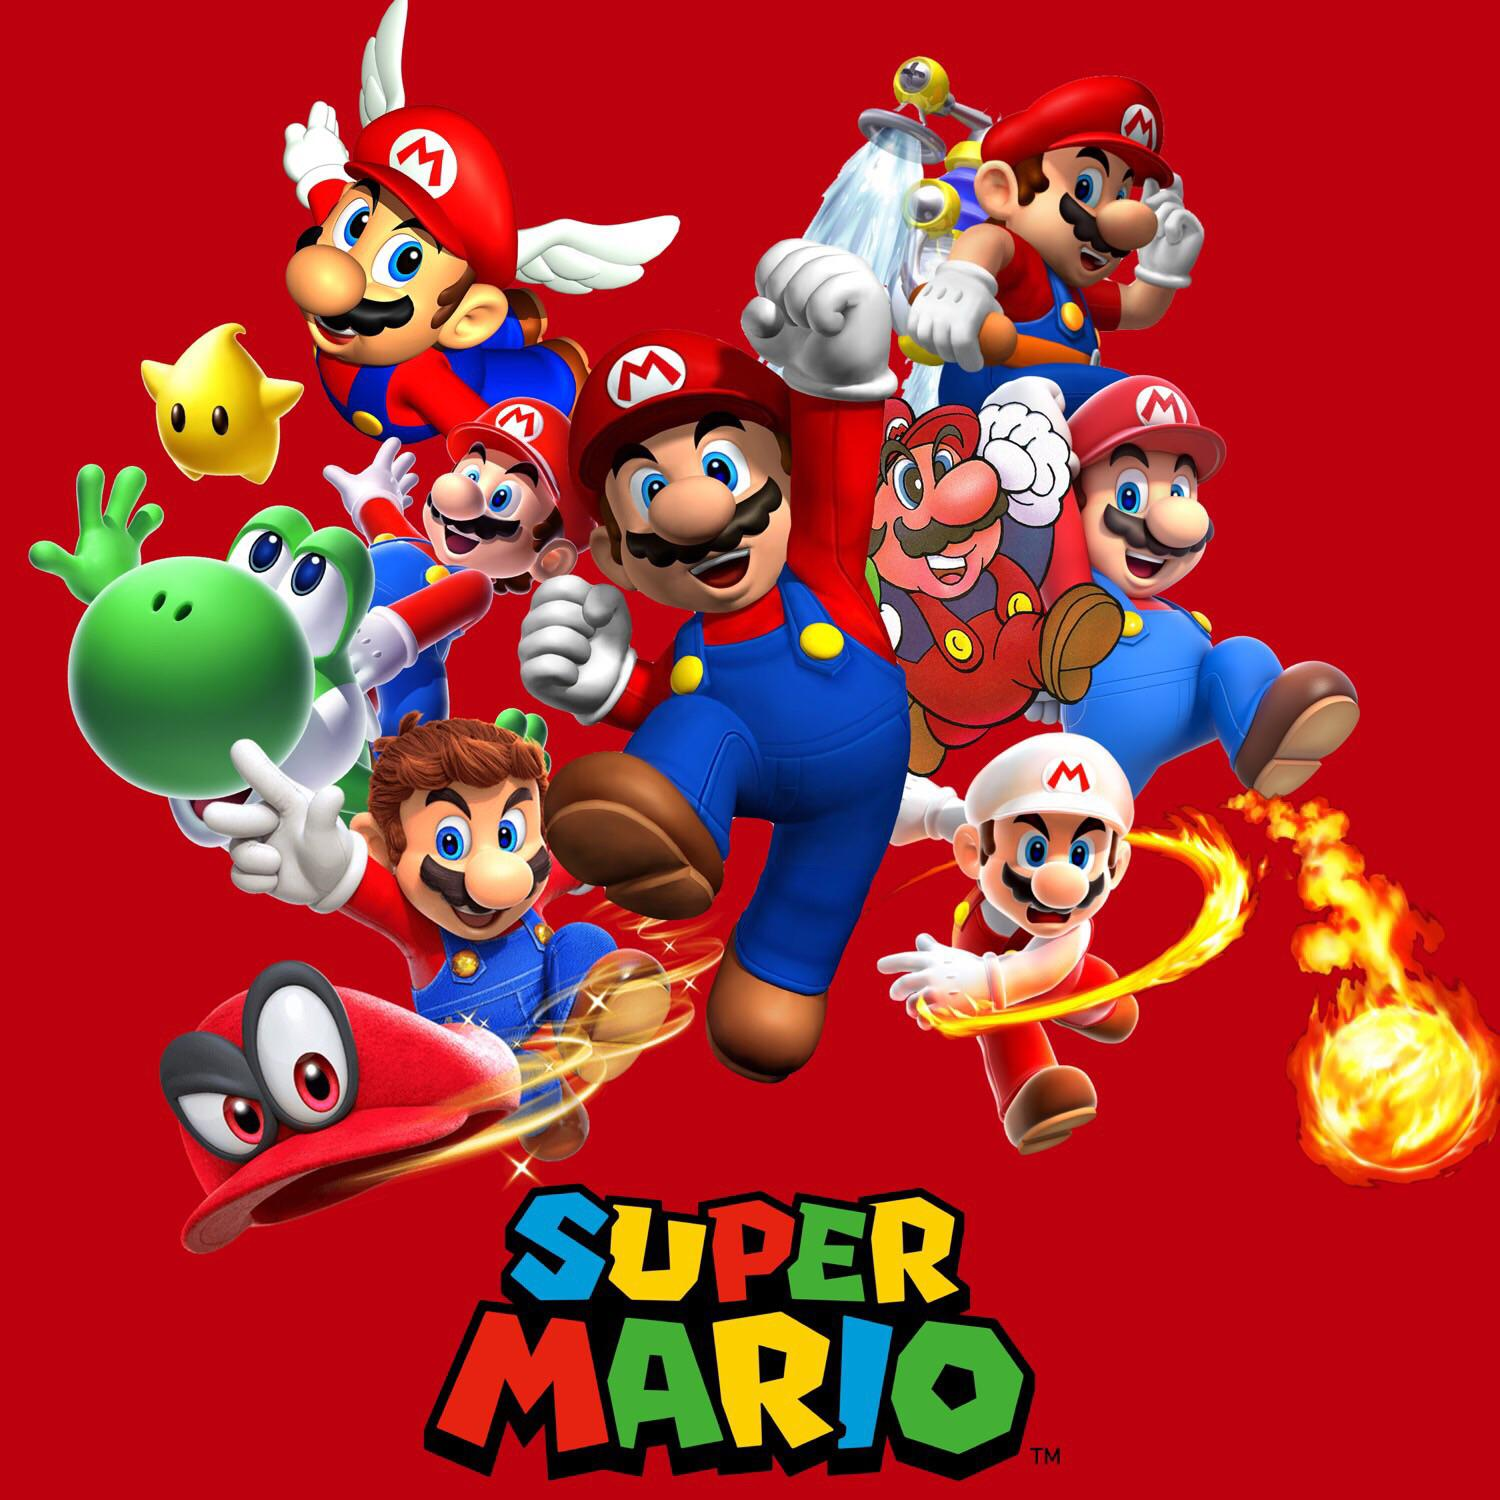 Happy 35th Birthday To The Greatest Video Game Series This Legendary Franchise Has Brought Happiness To Me And Millions Of Others And I Can T Wait For The Beautiful Future For The Series